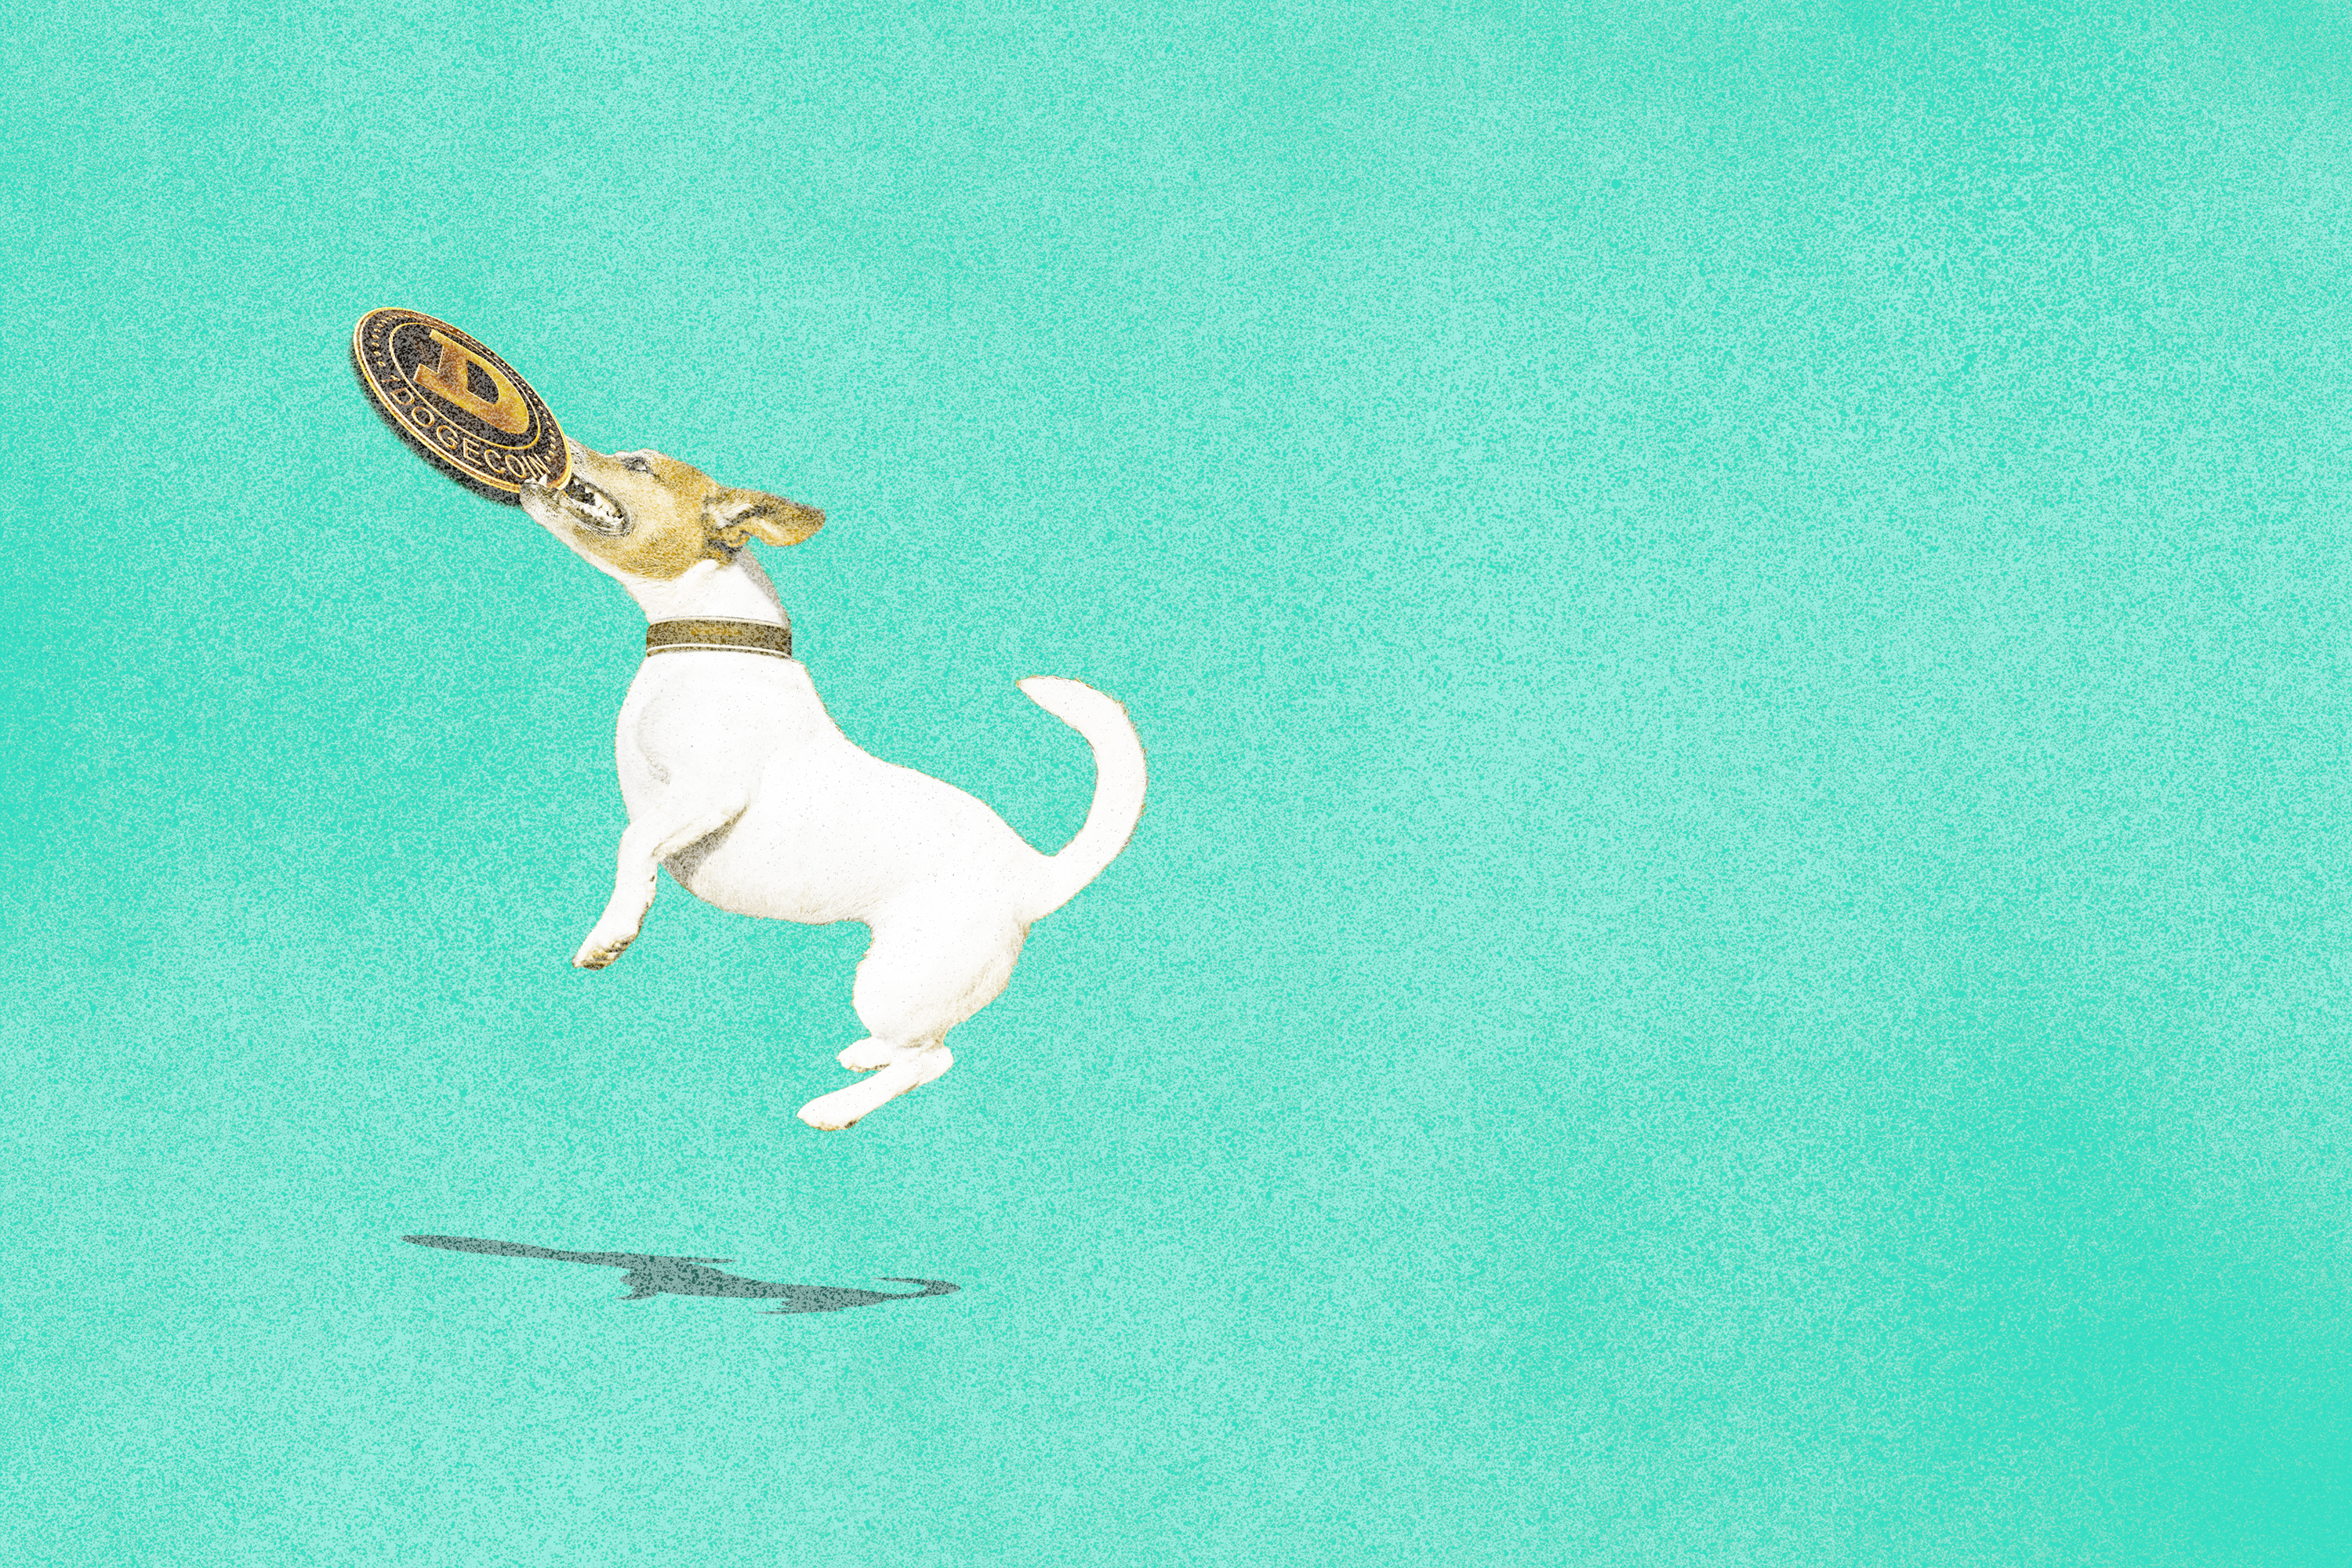 An illustration that shows a dog catching a coin.